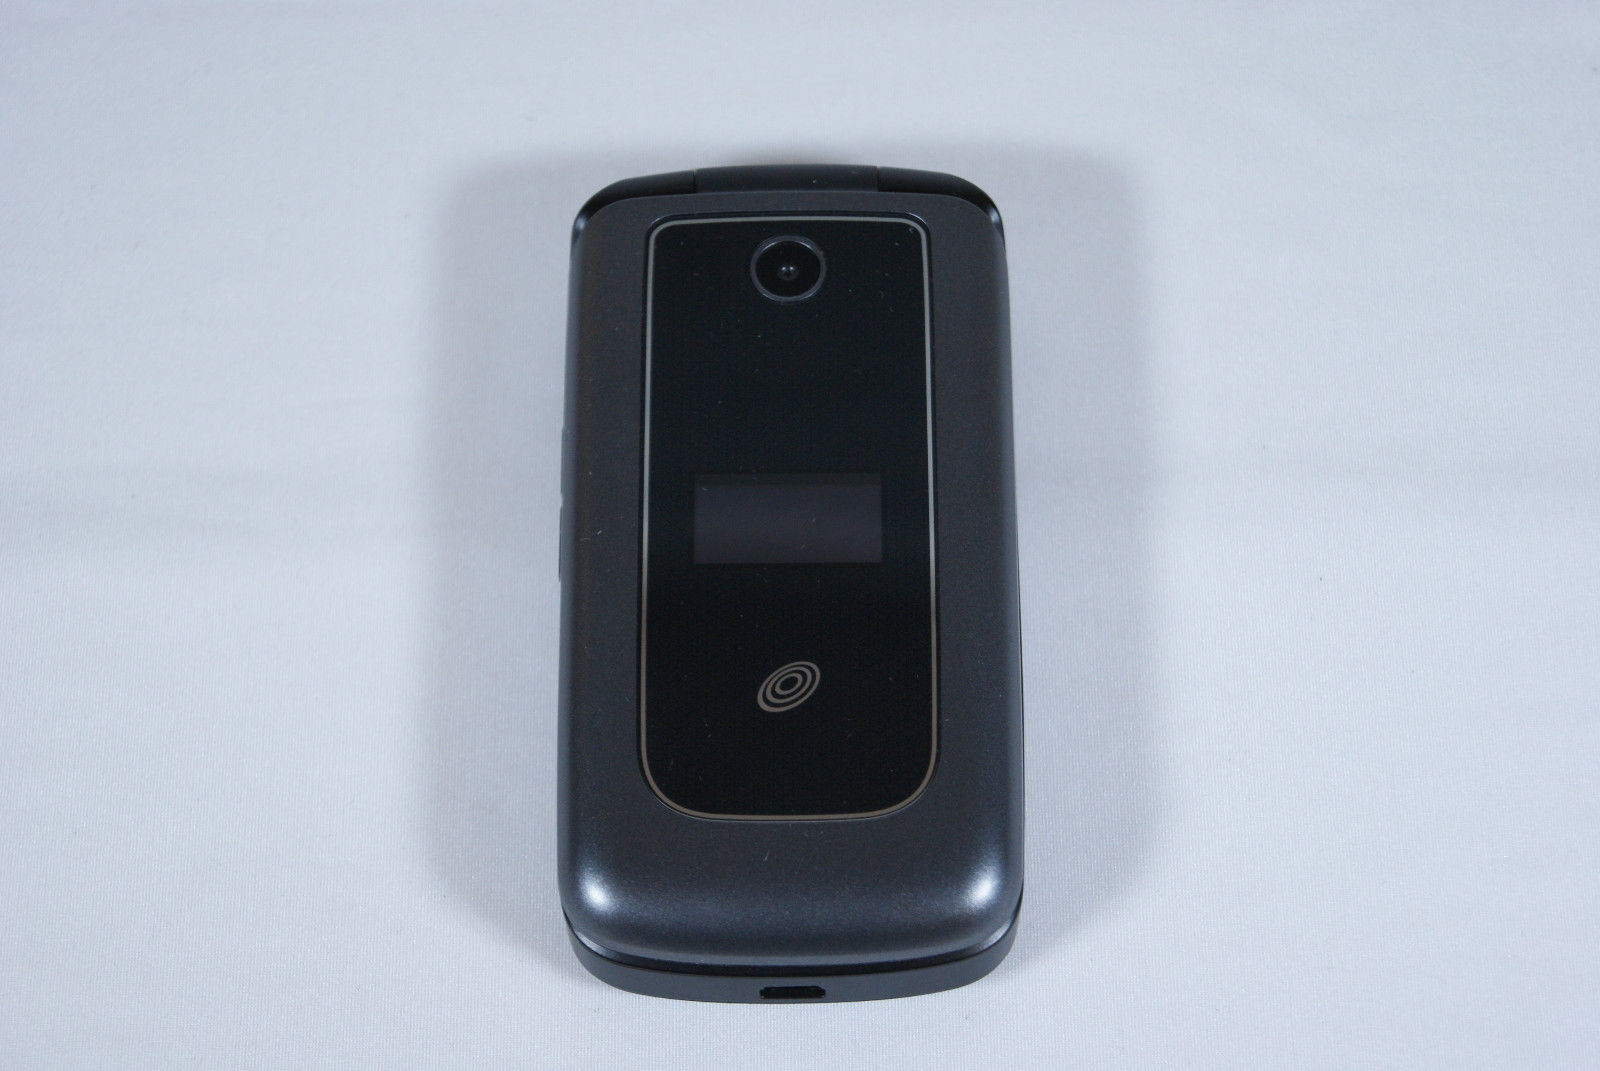 Zte Cymbal C Lte Z233VL - Android Flip Phone and 37 similar items